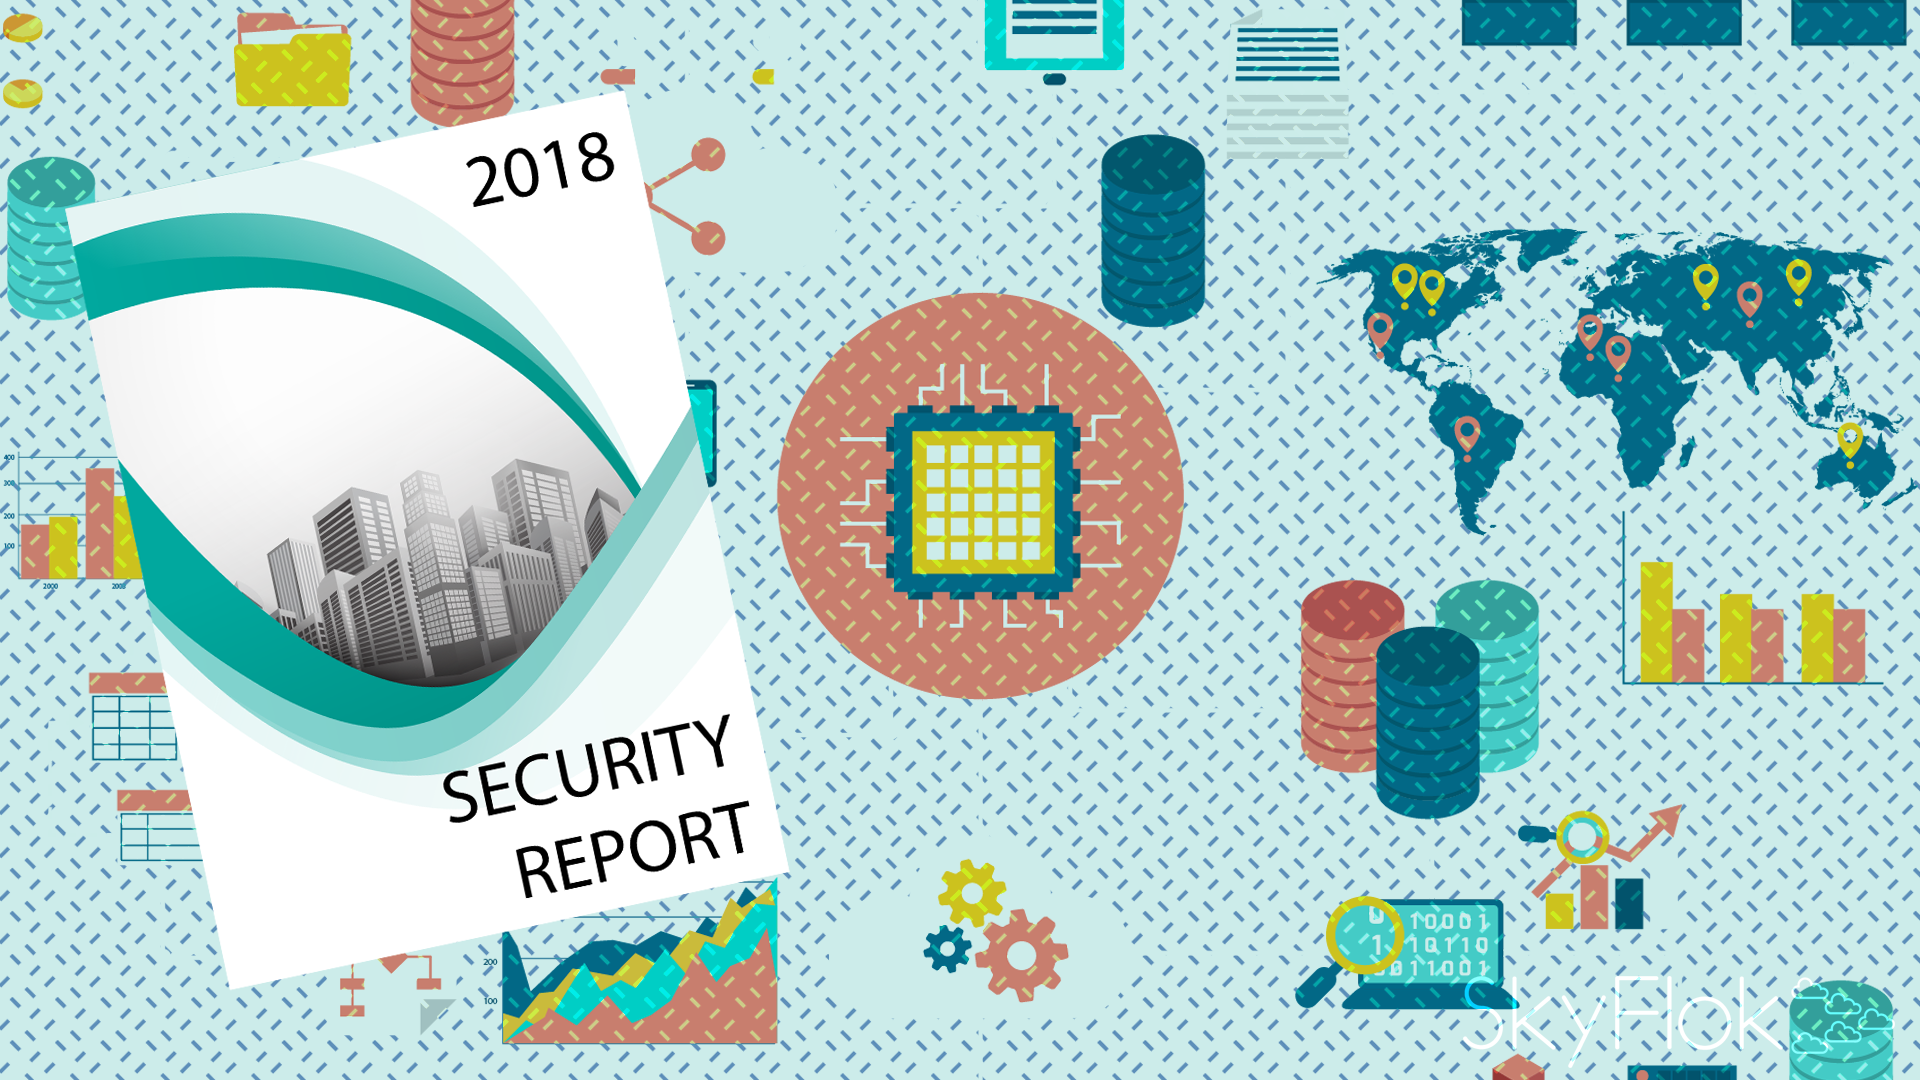 Ixia Releases 2018 Security Report Highlighting Cybersecurity Risk to Enterprise Cloud Operations